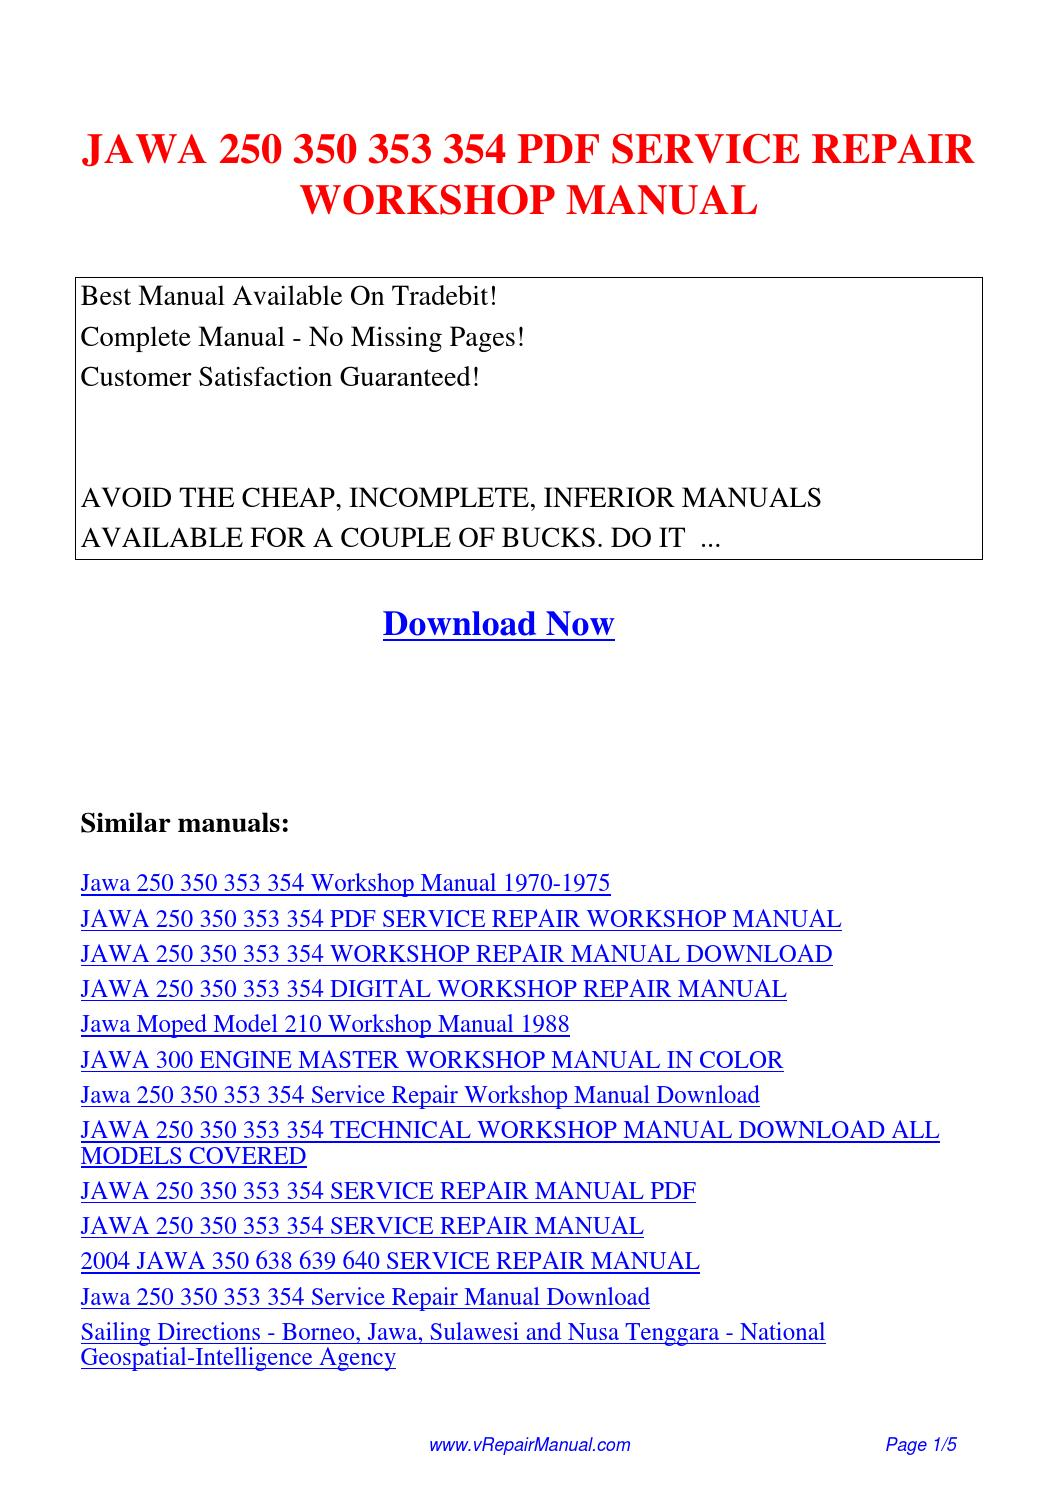 JAWA 250 350 353 354 SERVICE REPAIR WORKSHOP MANUAL.pdf by David Zhang -  issuu